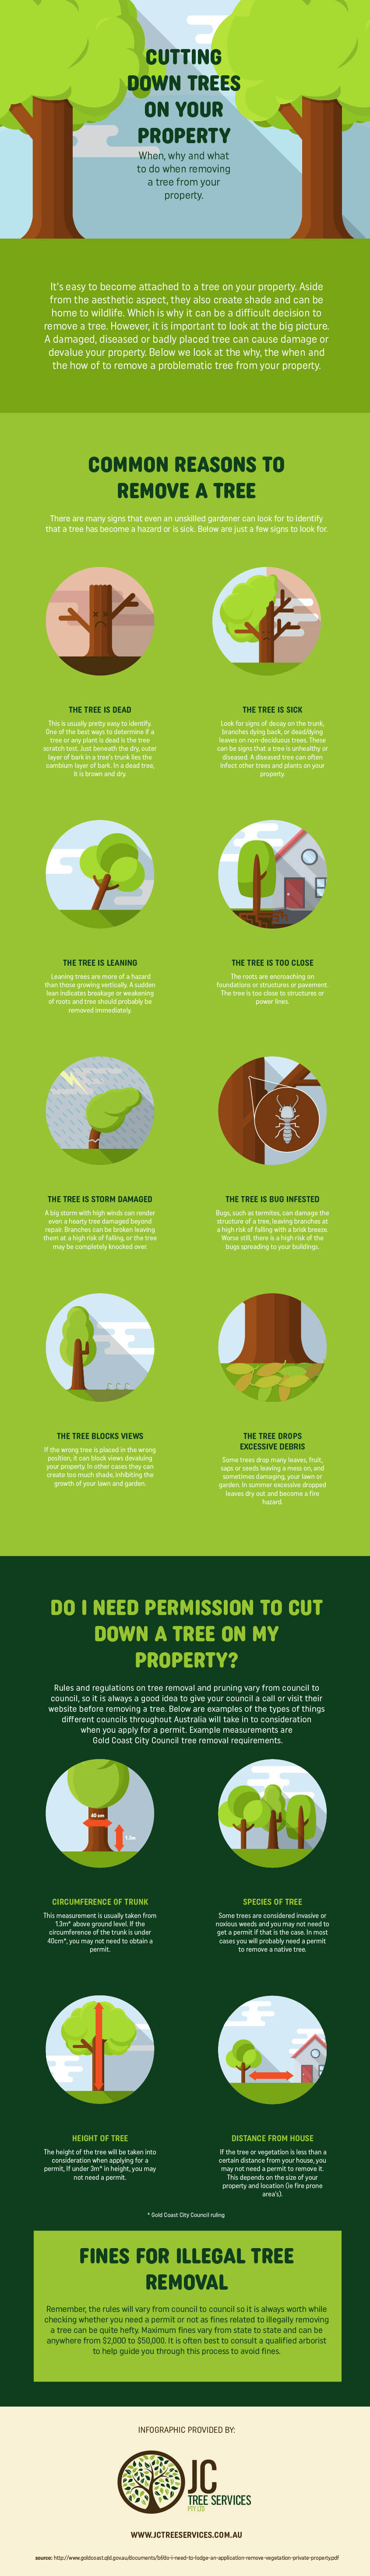 Cutting down trees on your property infographic